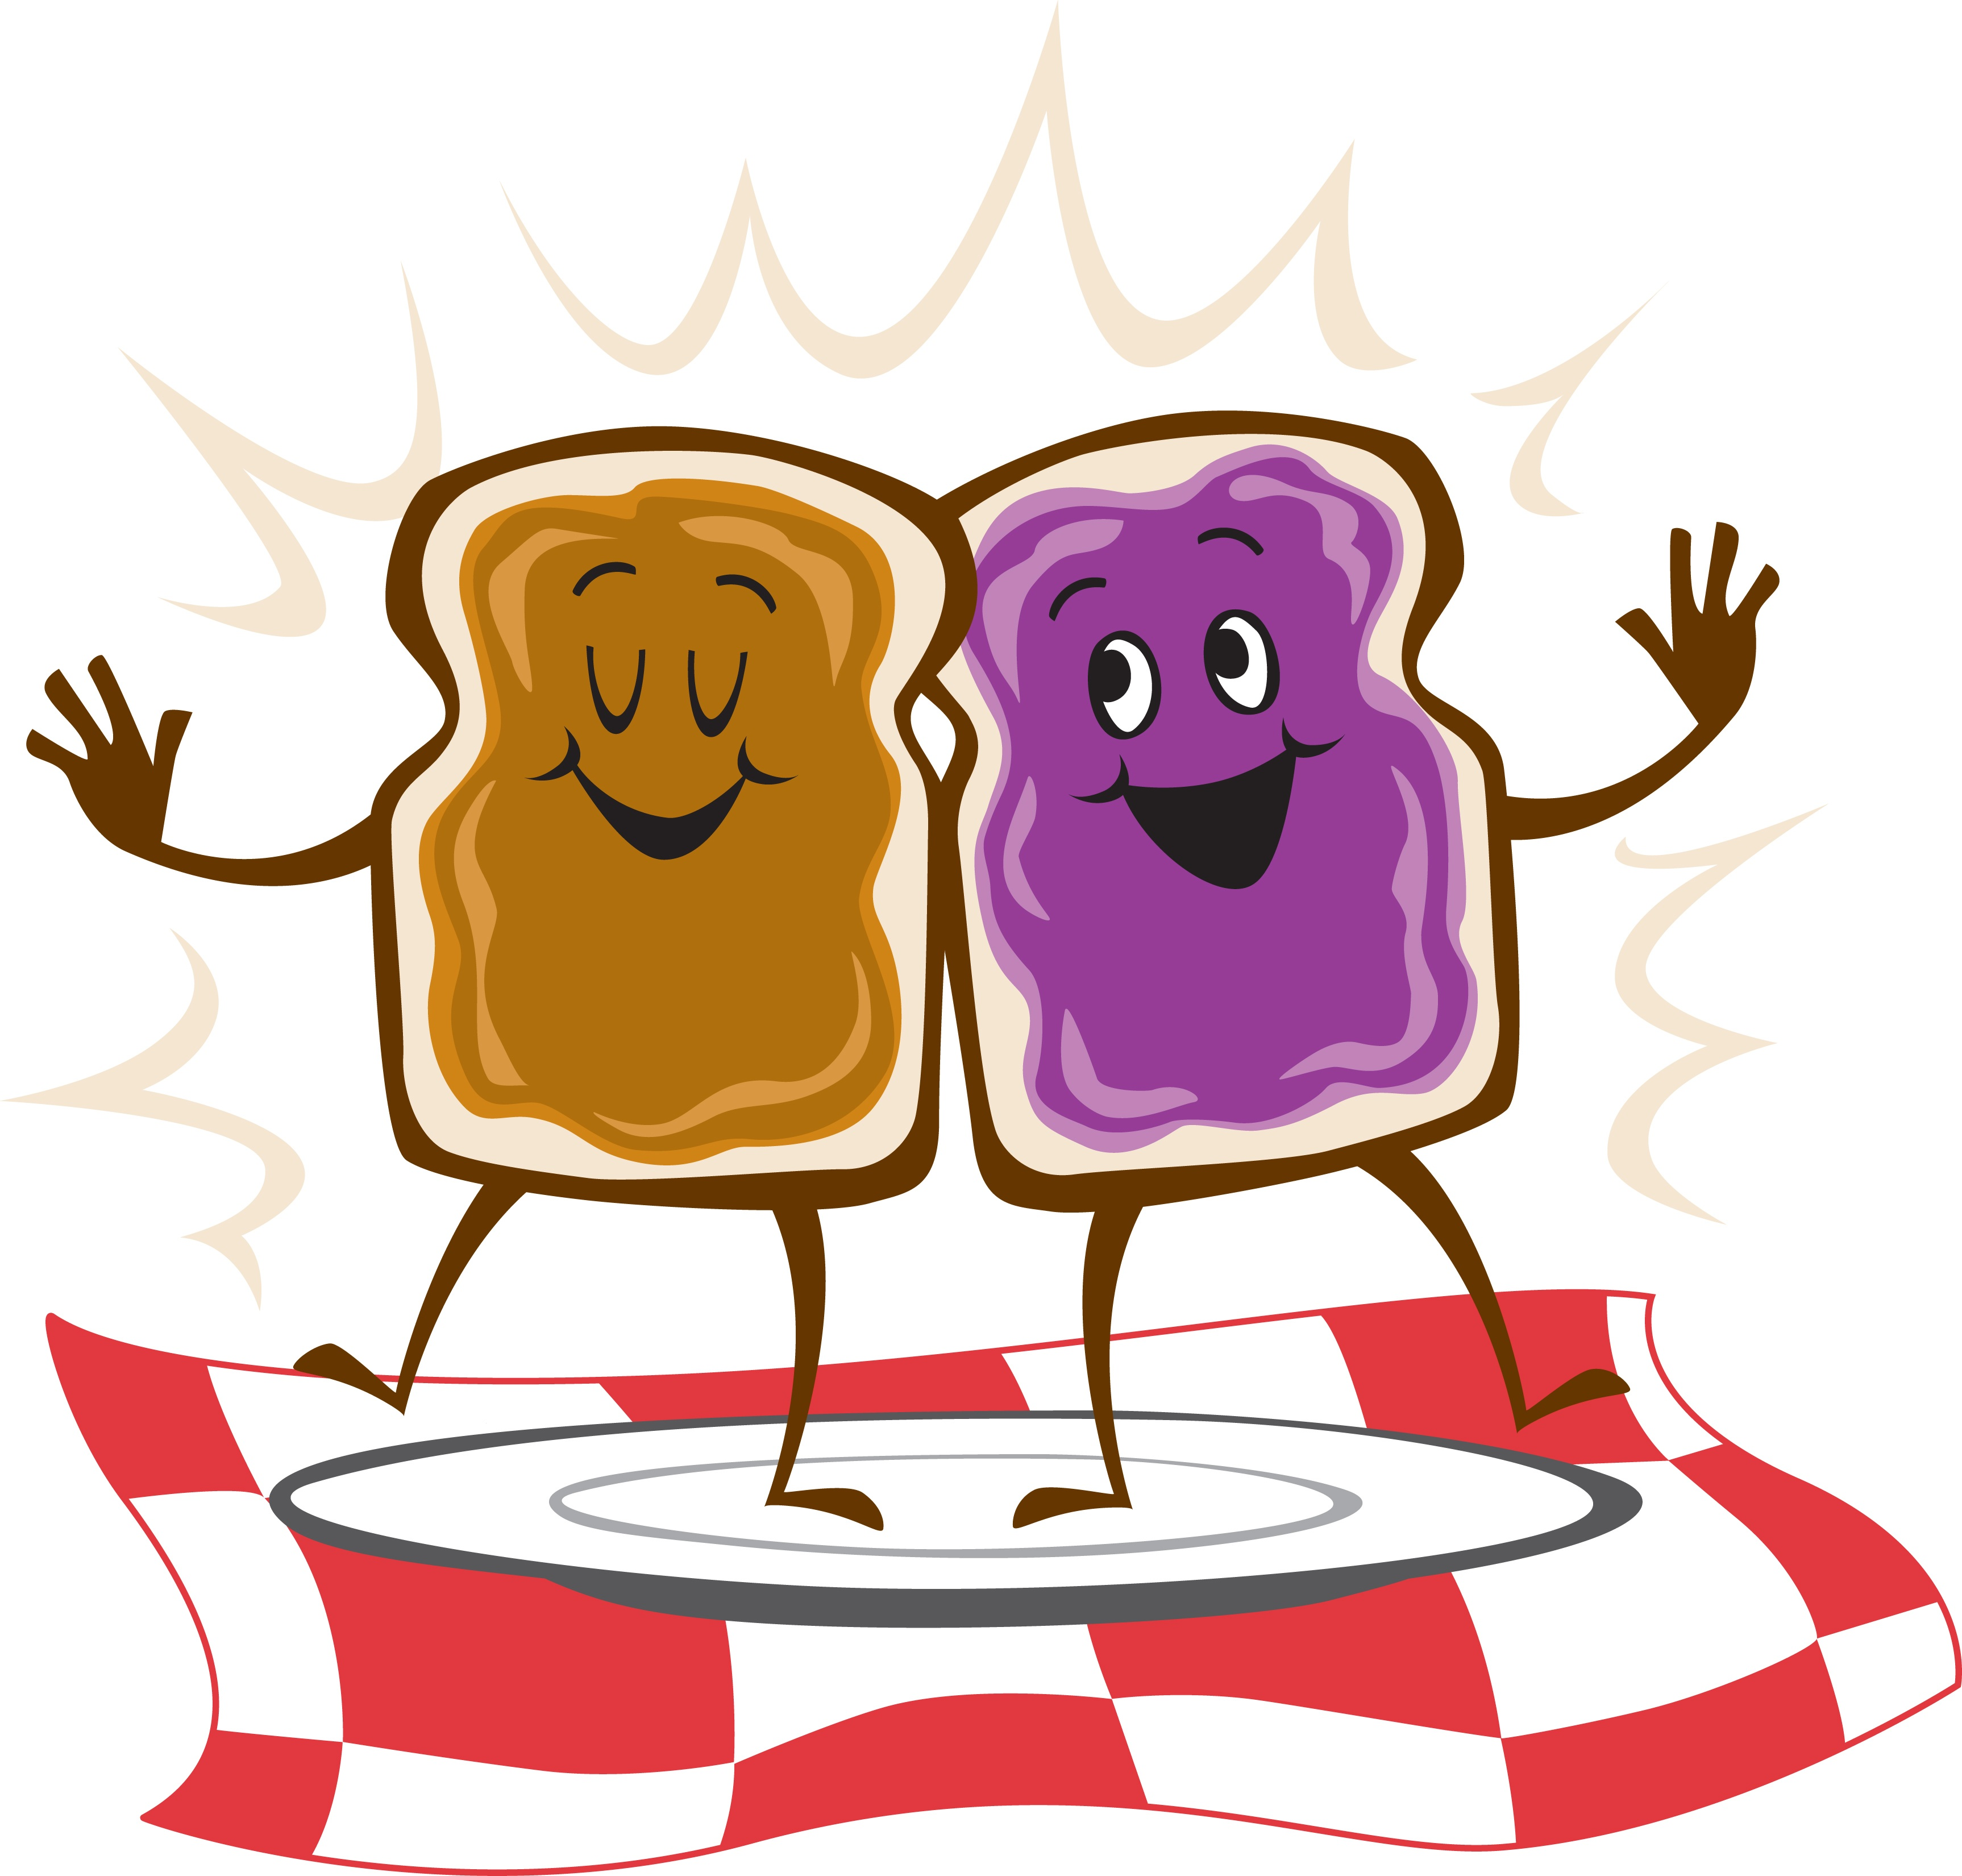 Marketing Peanut Butter Jelly Time clipart free image.